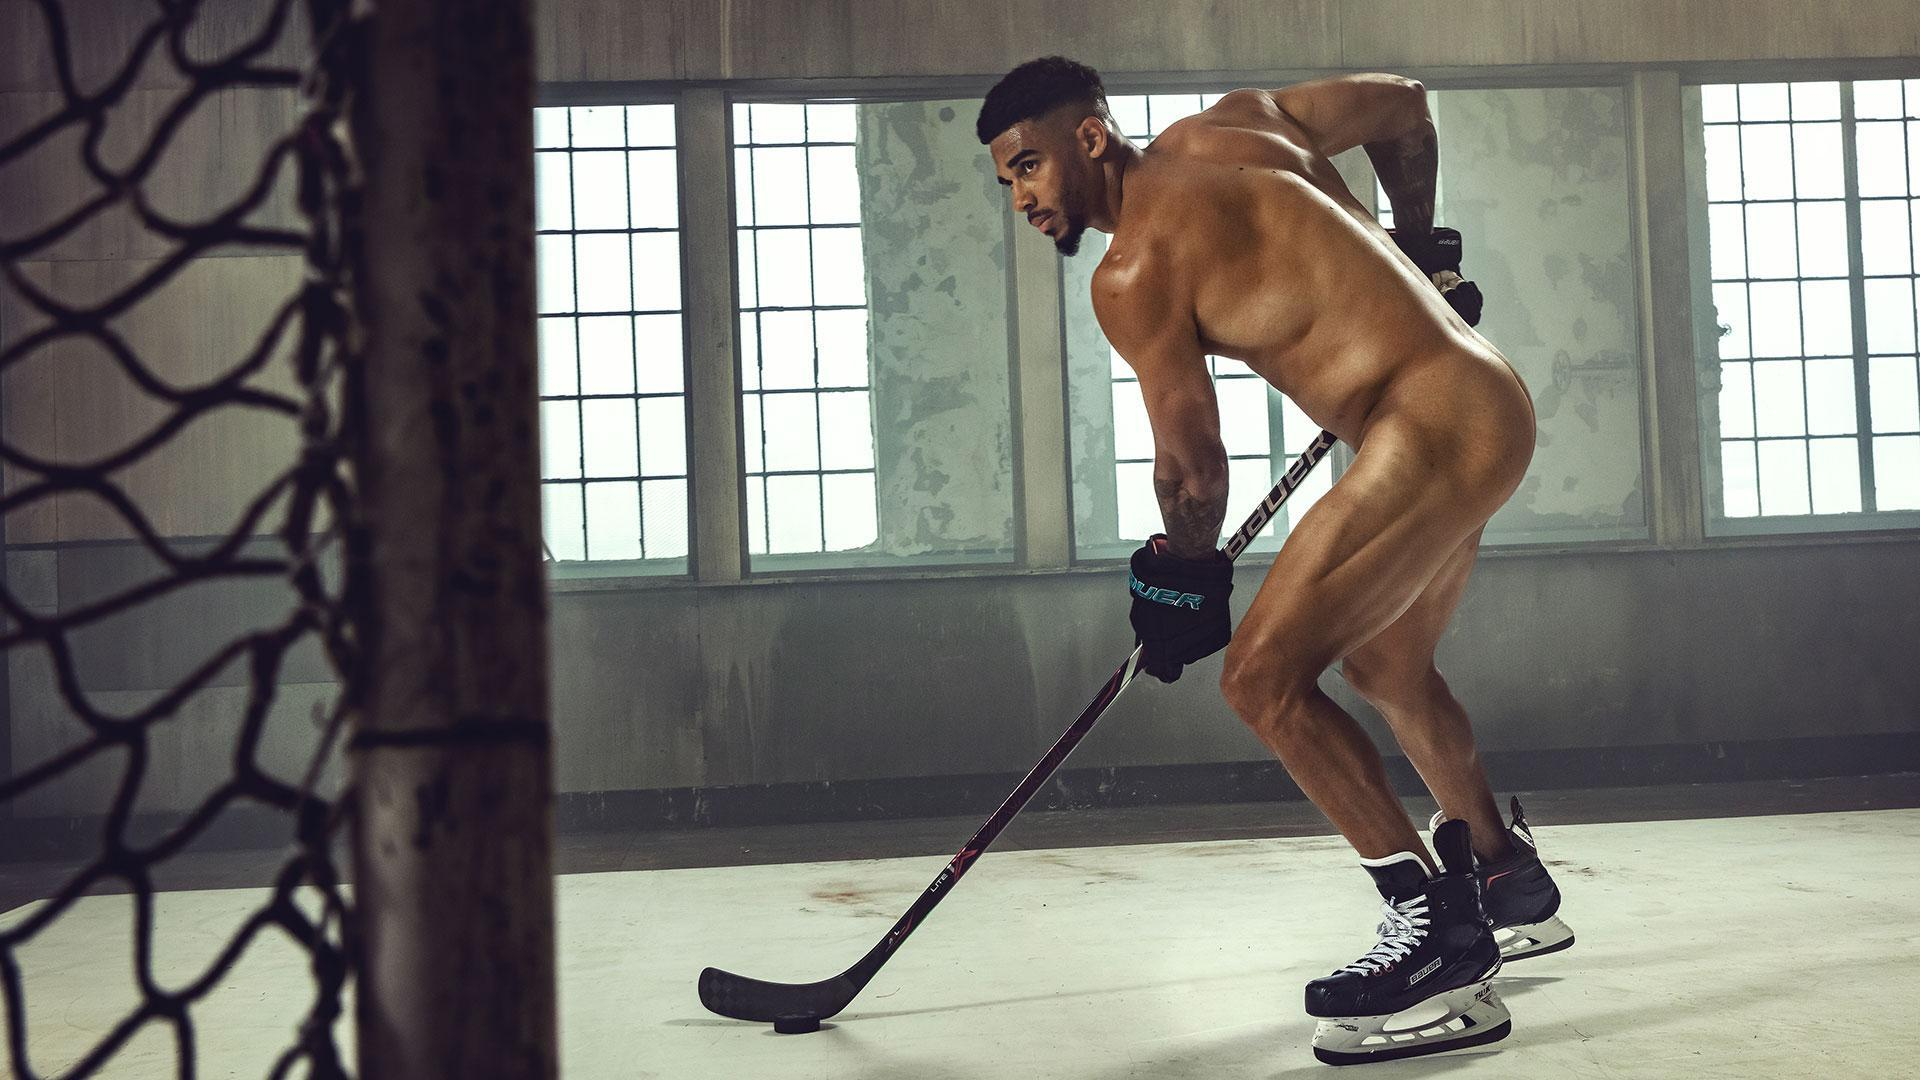 Behind the scenes of Evander Kane's Body Issue shoot